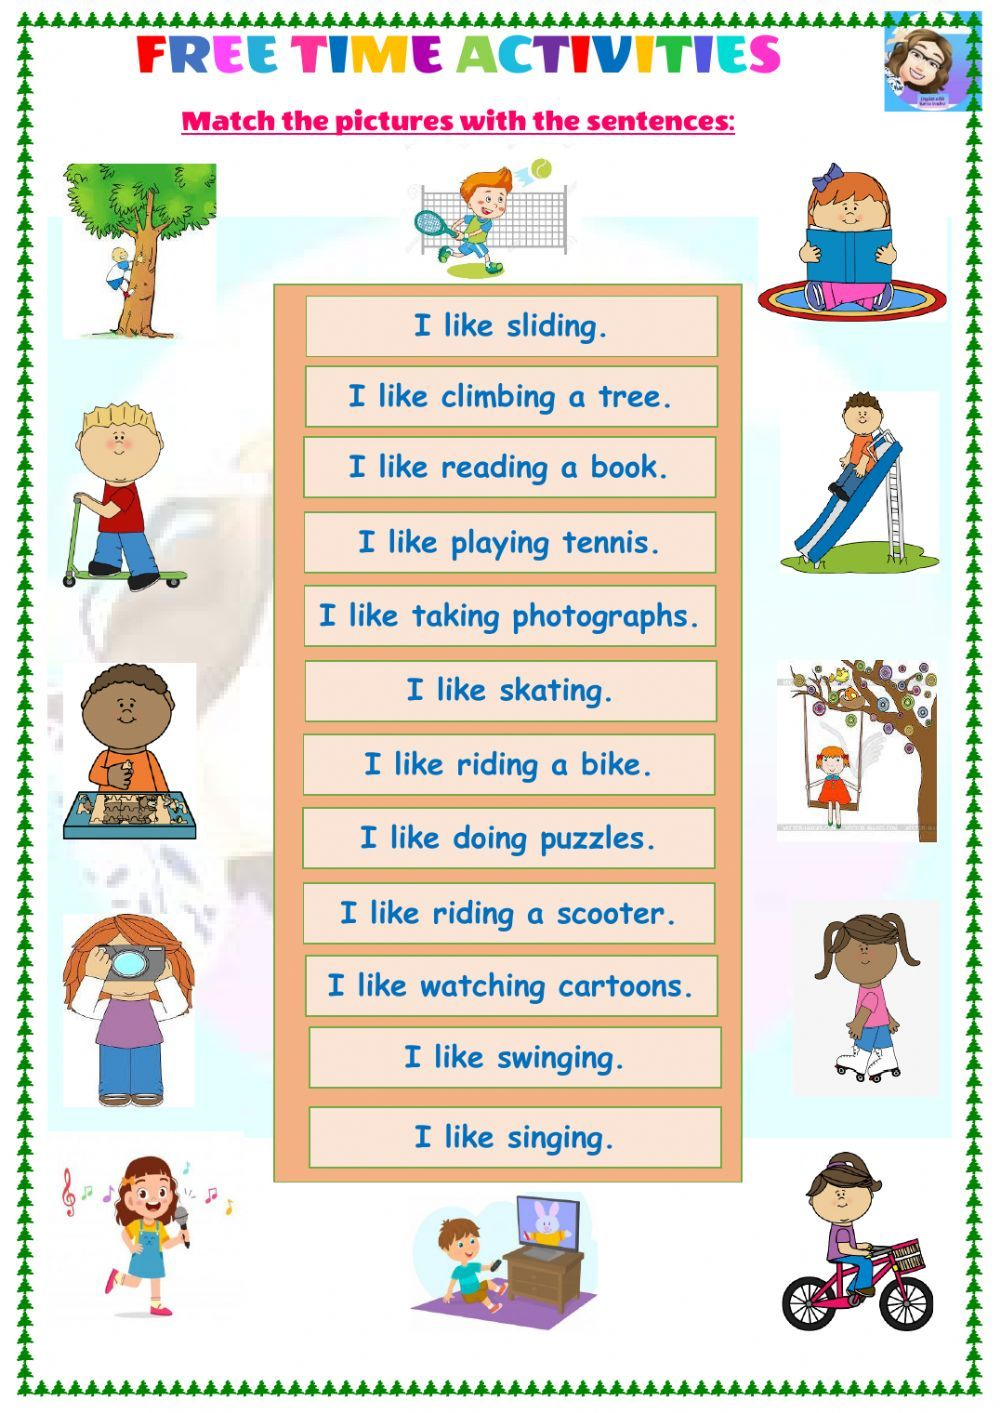 Free Time Activities Online Worksheet For Grade 4 You Can Do The Exercises Online Or Download T In 2021 Free Time Activities Time Activities Learning English For Kids [ 1413 x 1000 Pixel ]